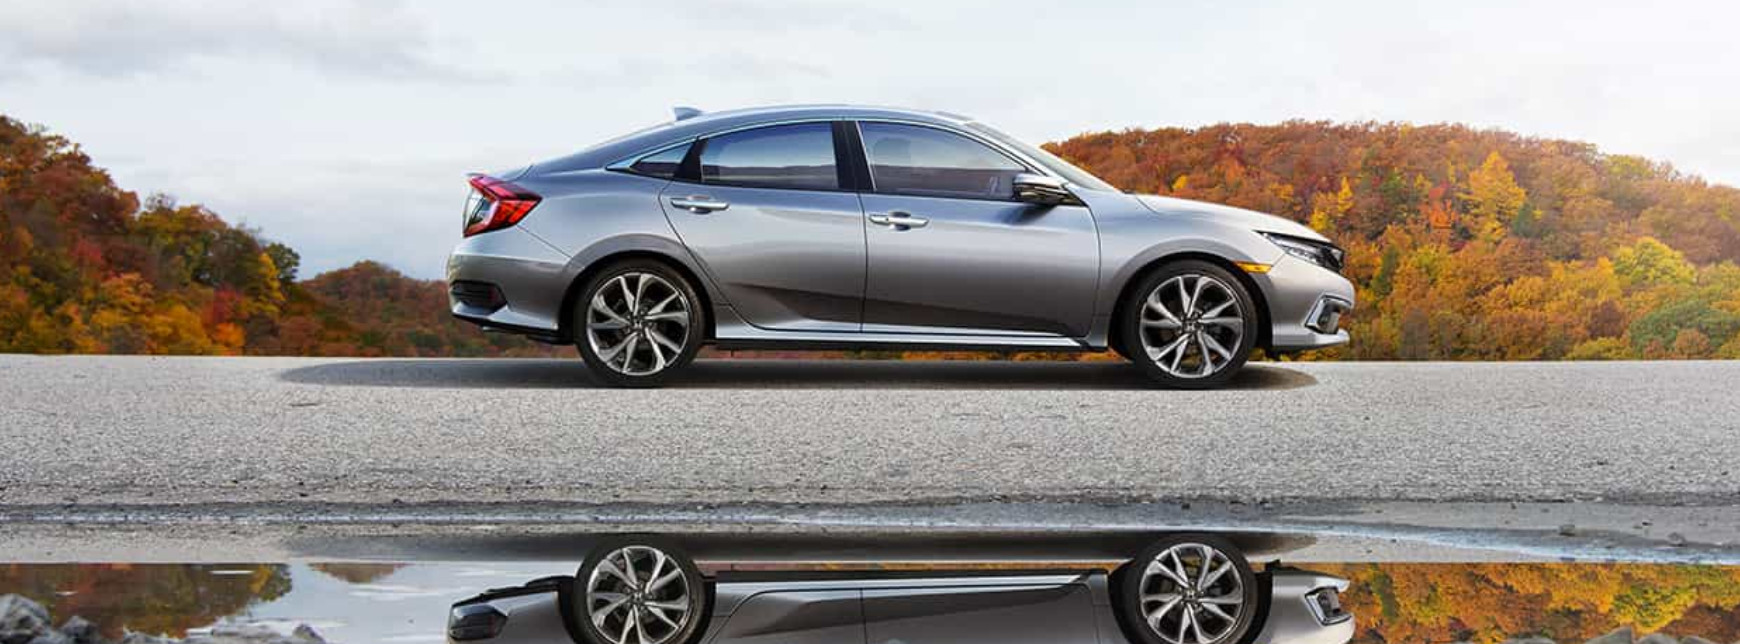 2020 Honda Civic Lease near Ann Arbor, MI